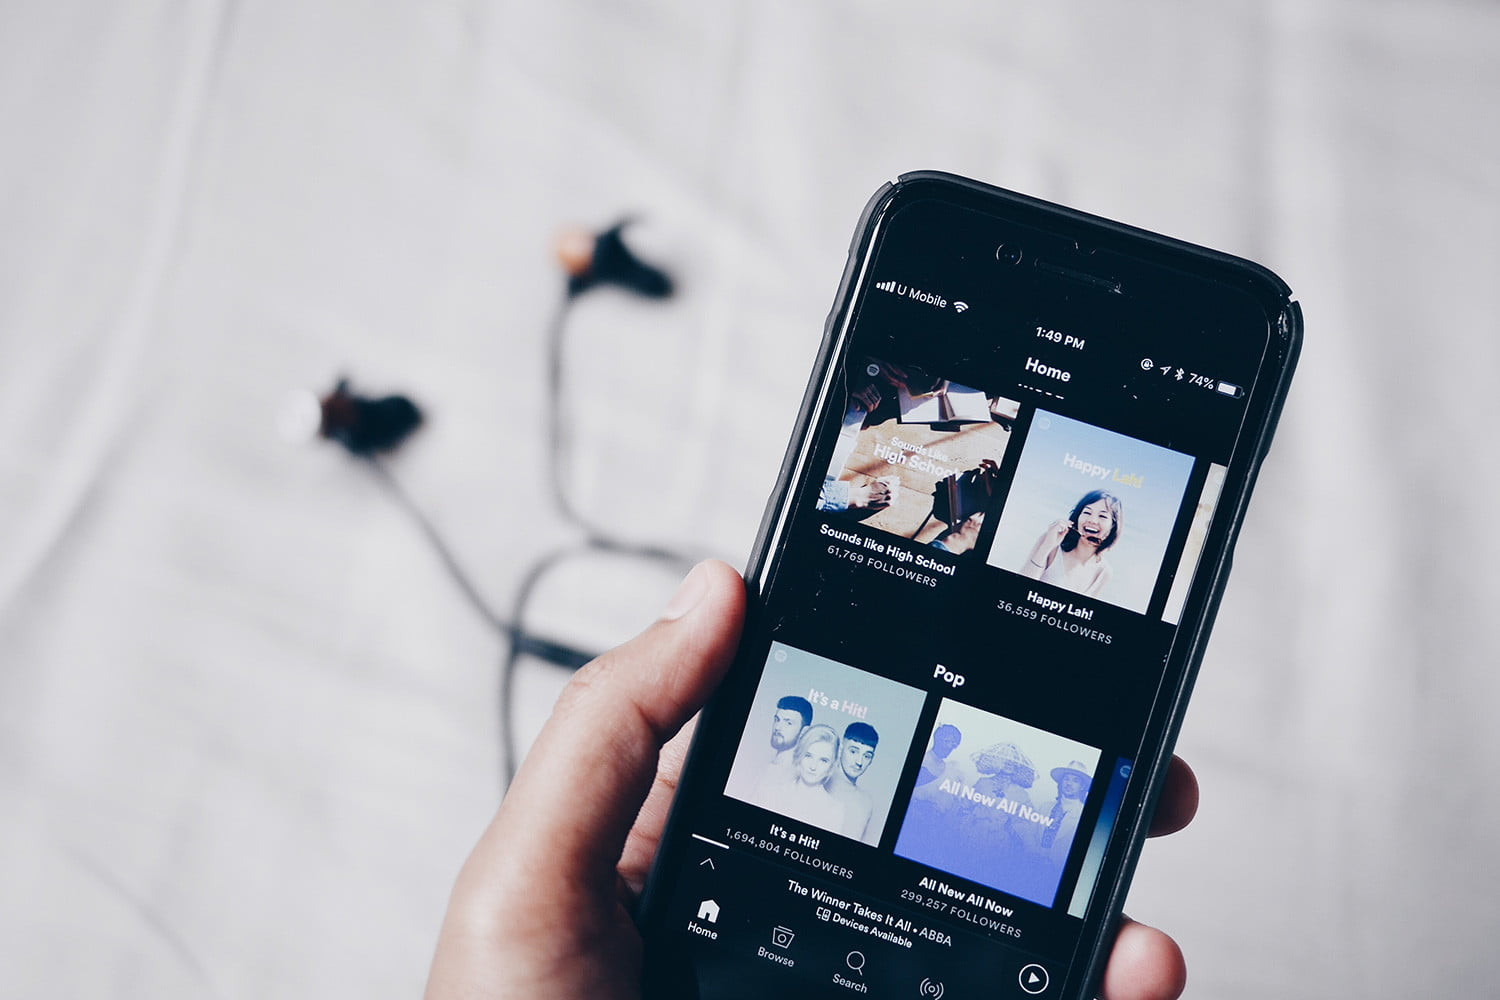 You May Soon Be Able to Listen to Your Own Music on Spotify